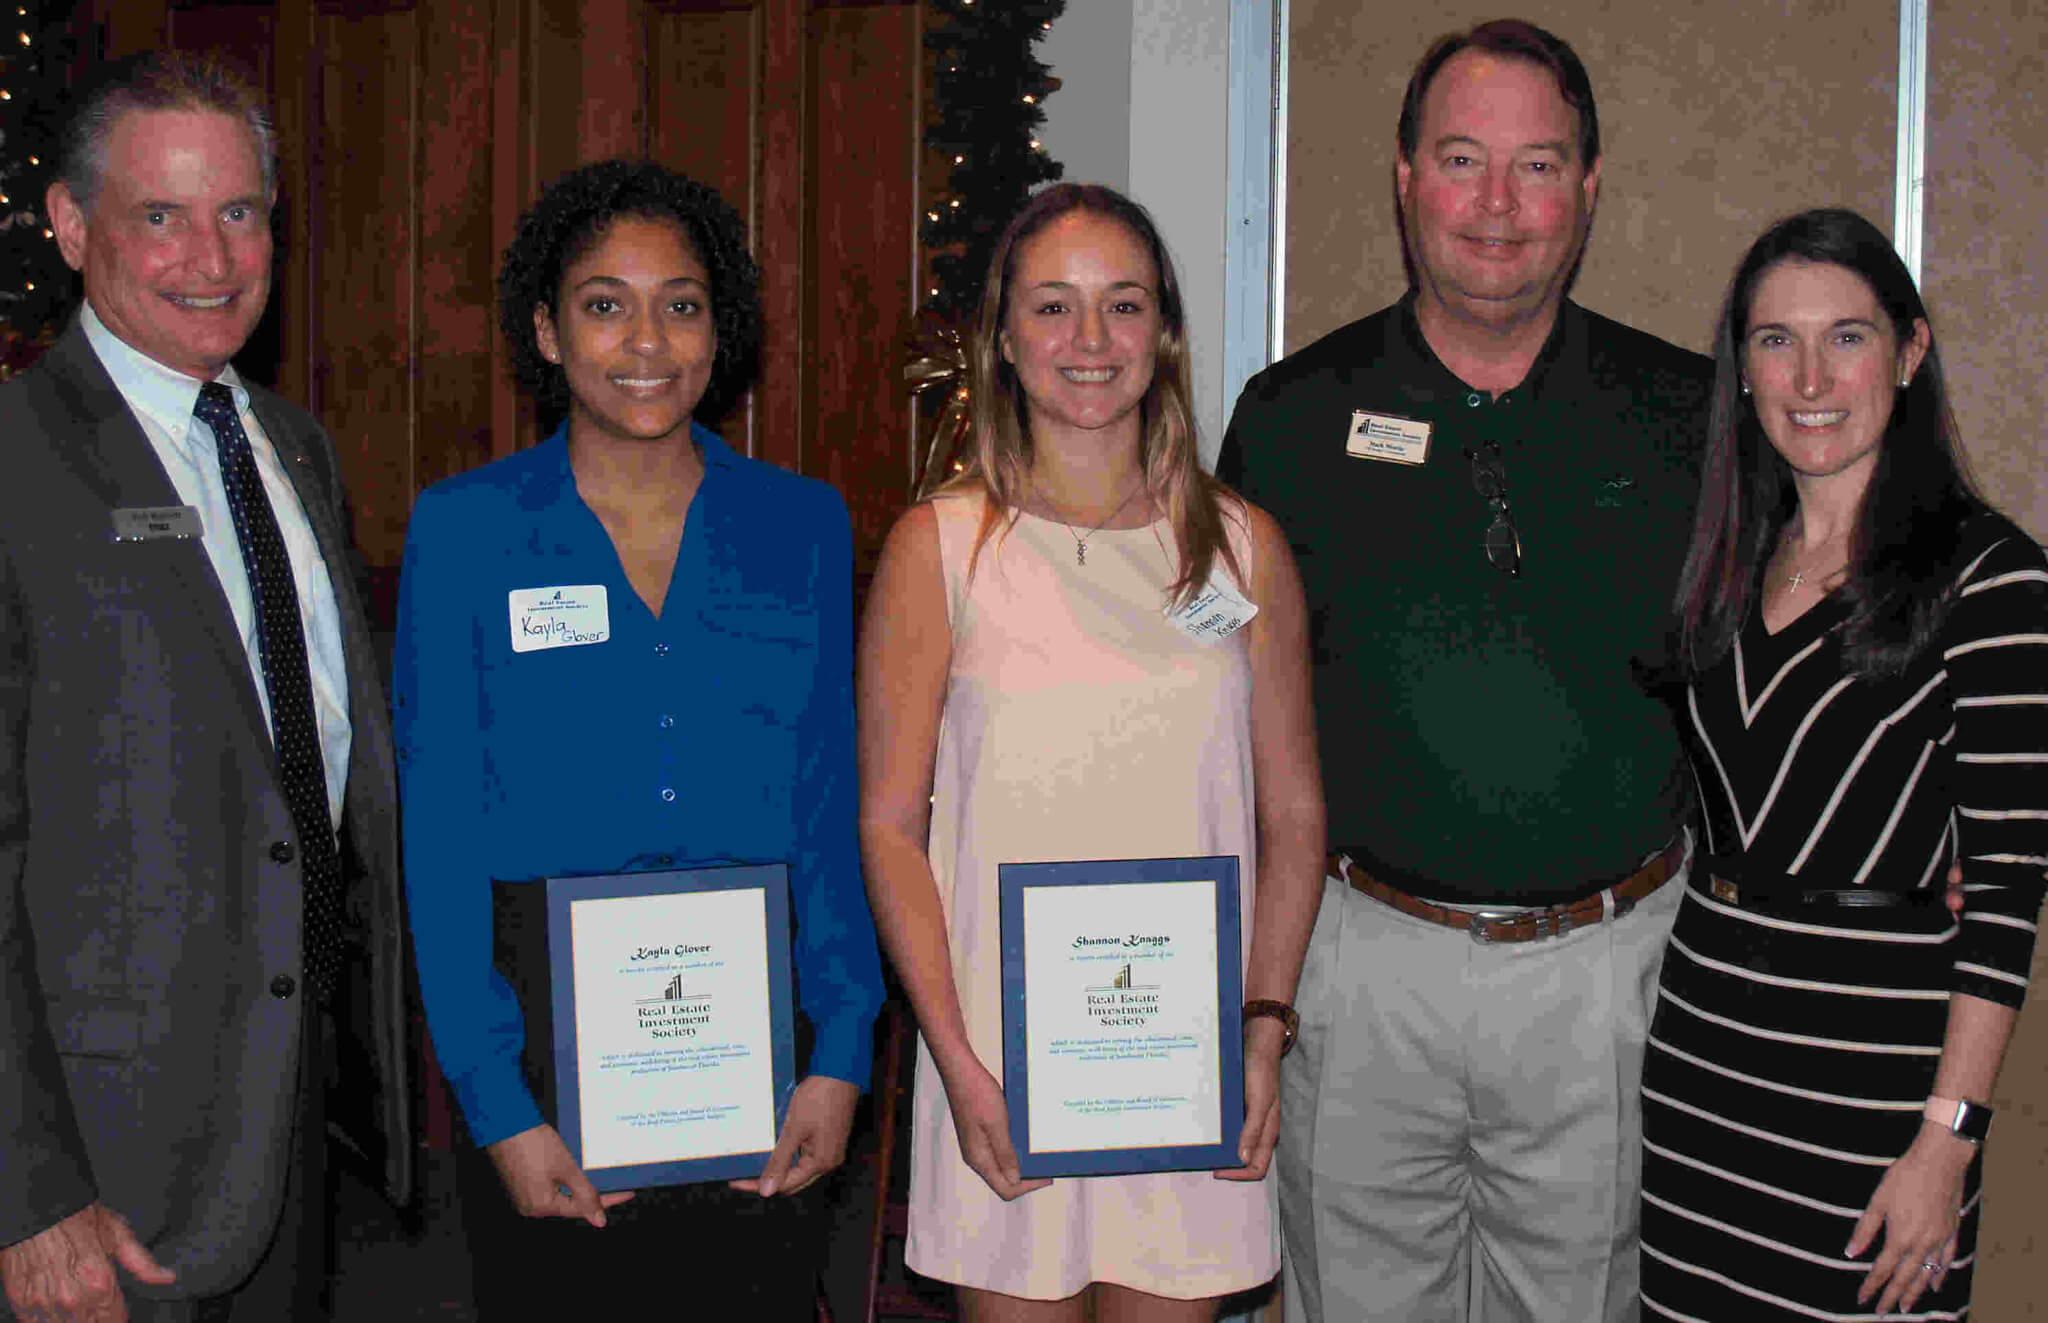 FGCU students receive real estate scholarships